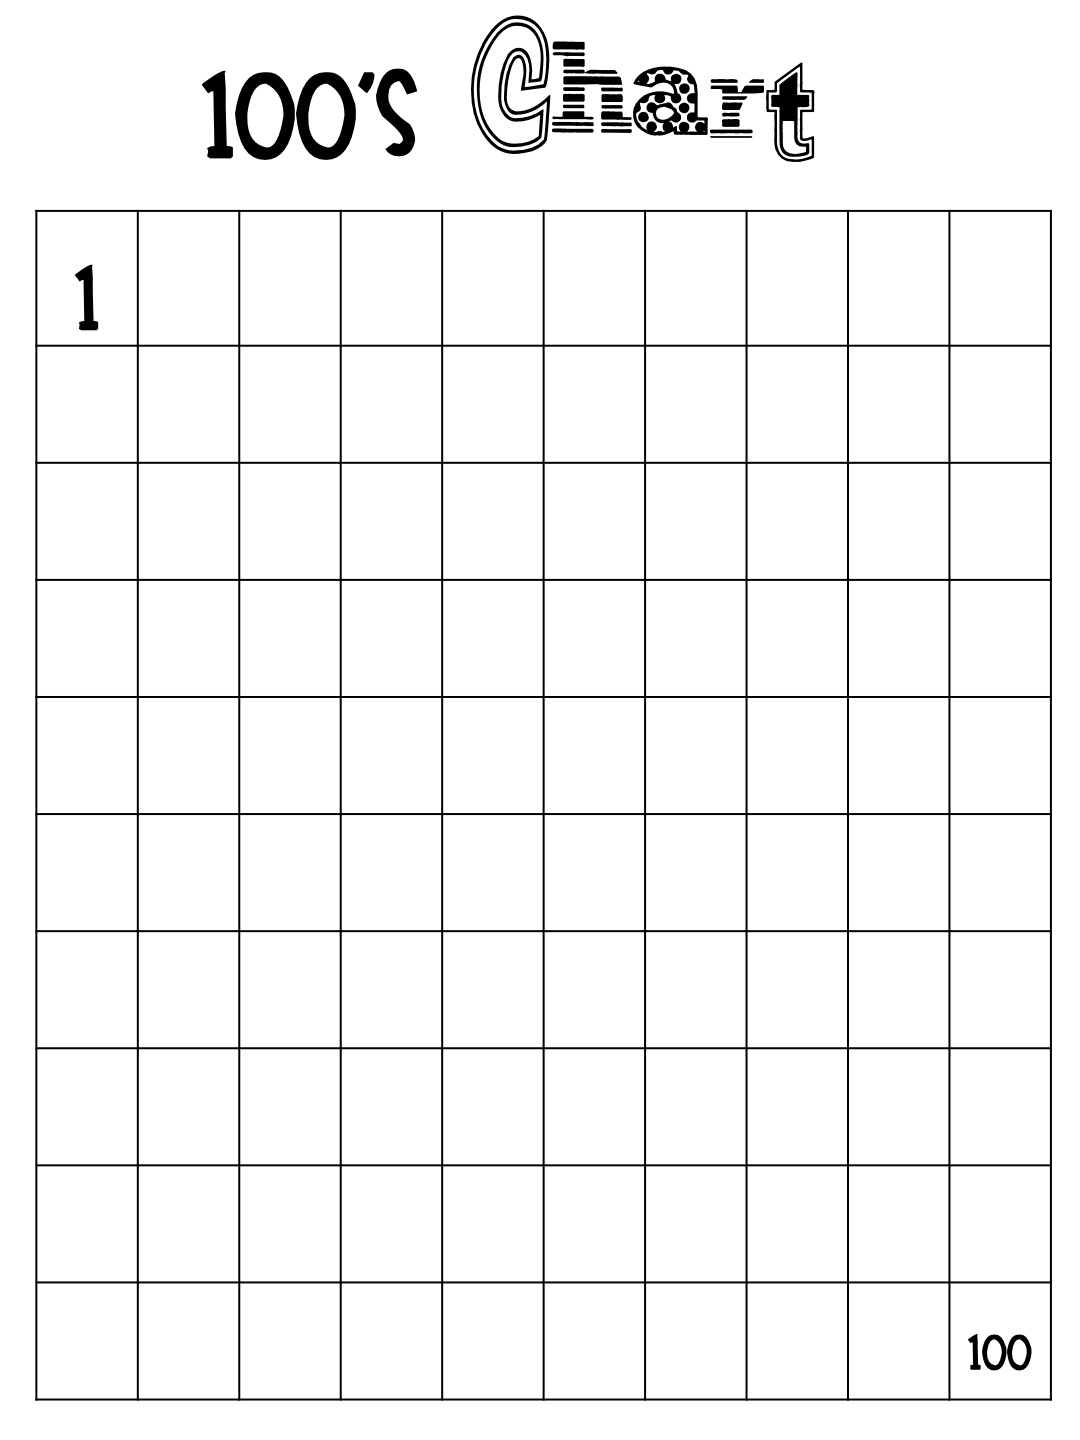 Worksheet Hundreds Chart Missing Numbers in hundreds chart laptuoso fill laptuoso